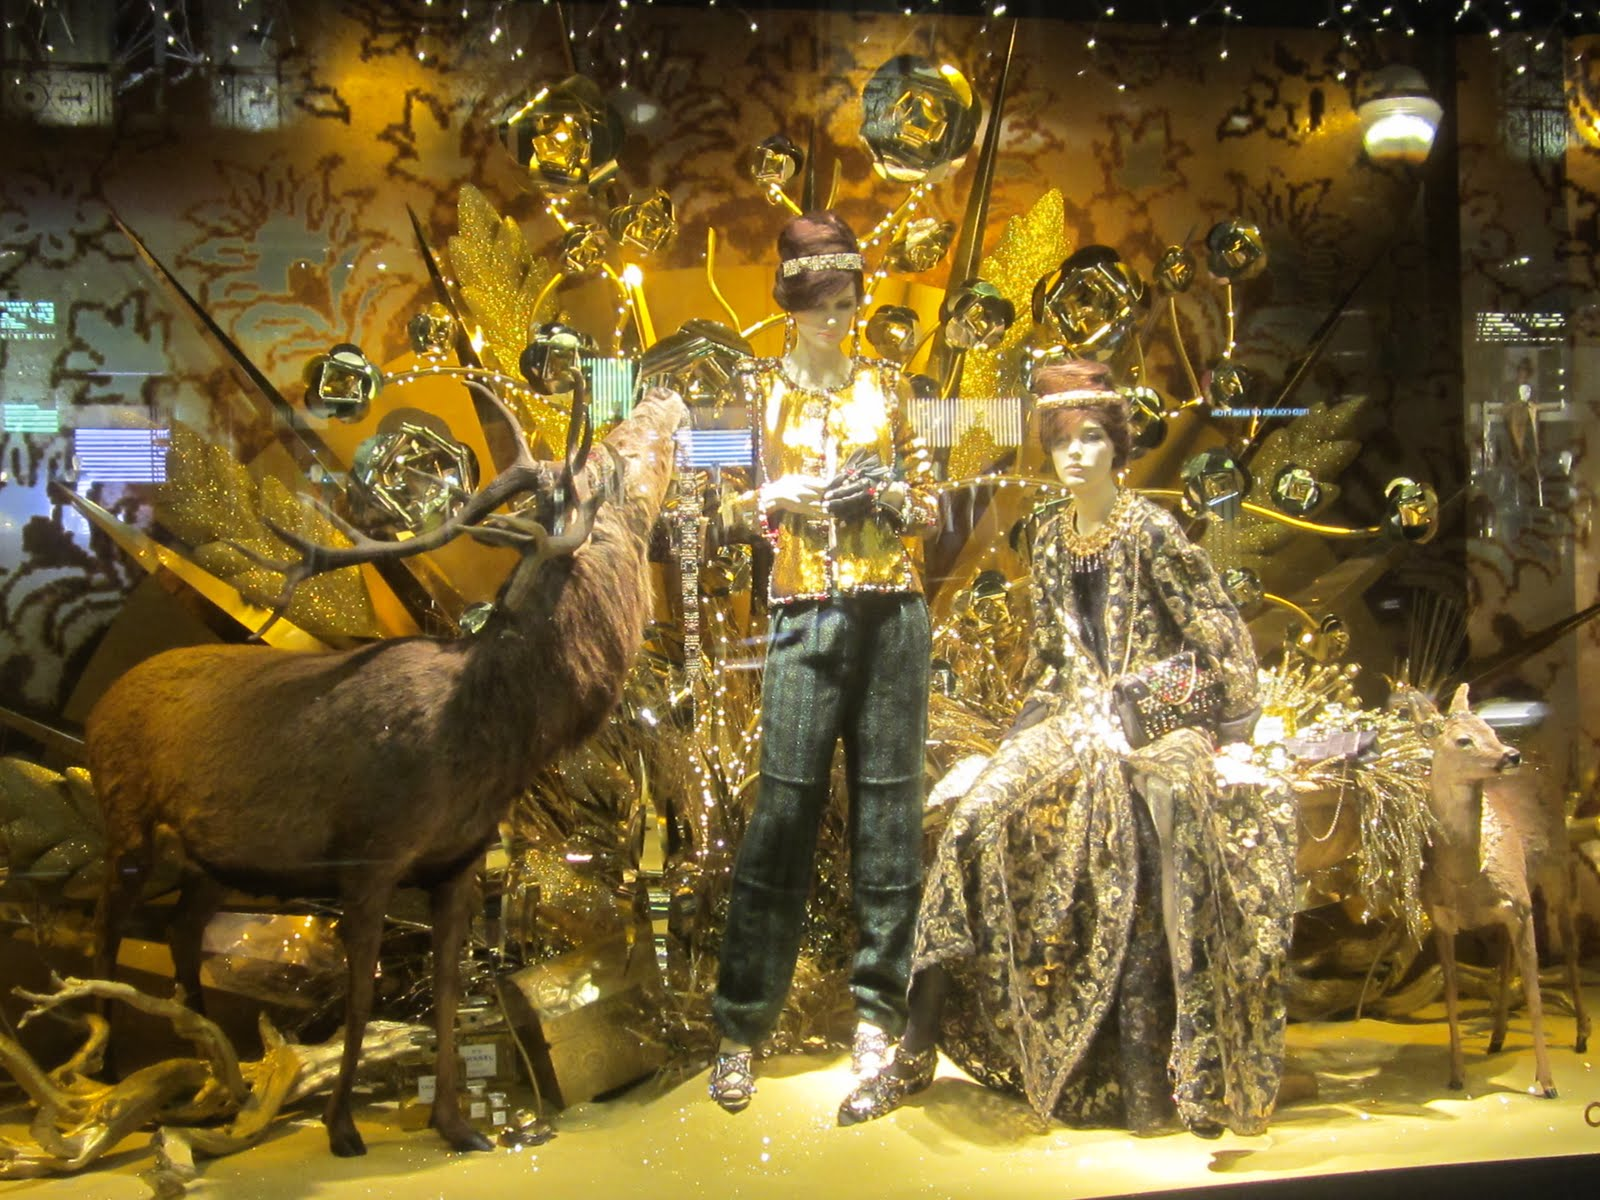 In this Christmas window display, we can see two mannequins near a deer, and many golden details, in theme with the holidays.